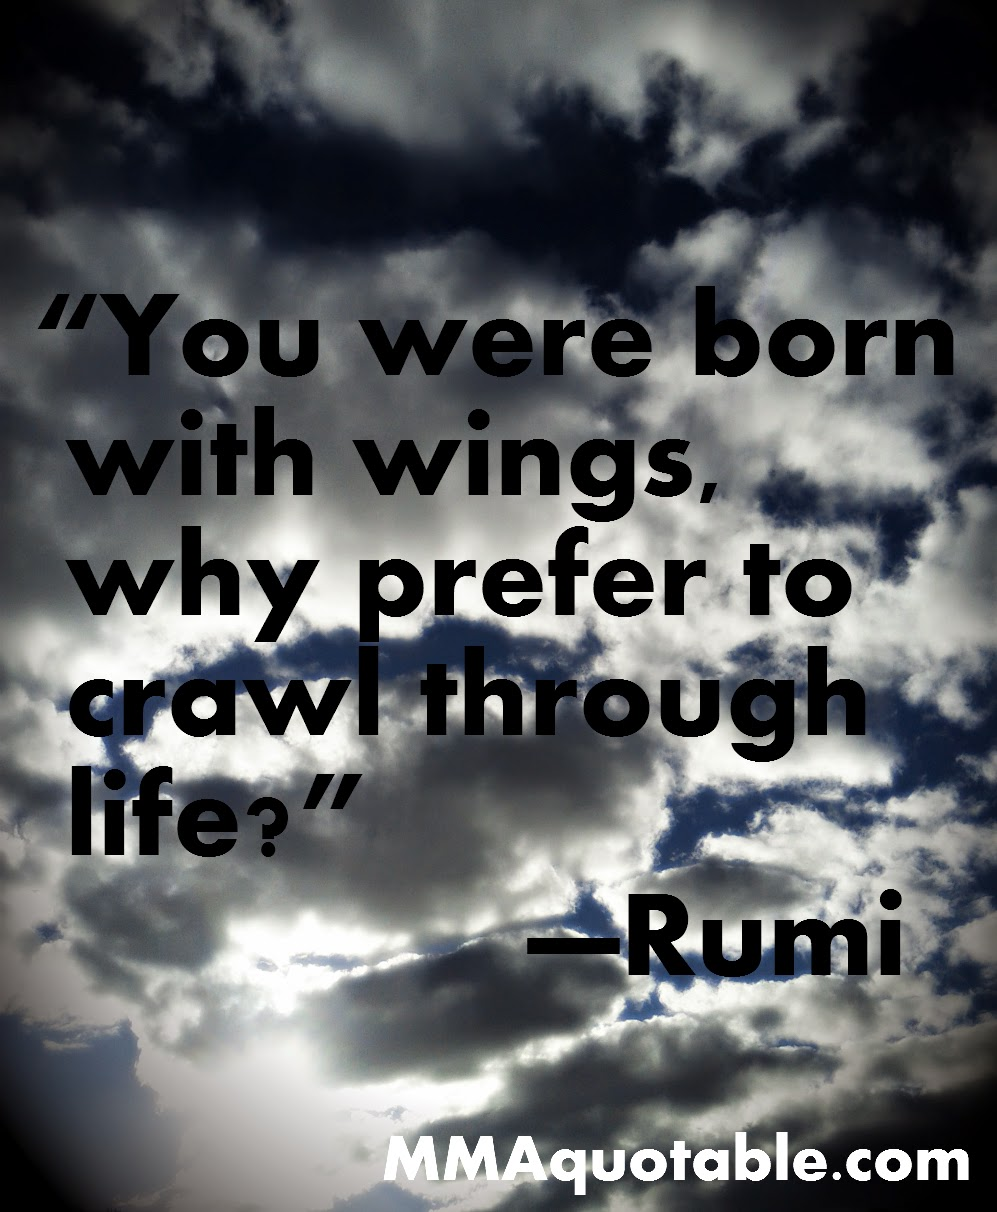 Rumi Quote Motivational Quotes With Pictures Many Mma & Ufc Rumi Quotes